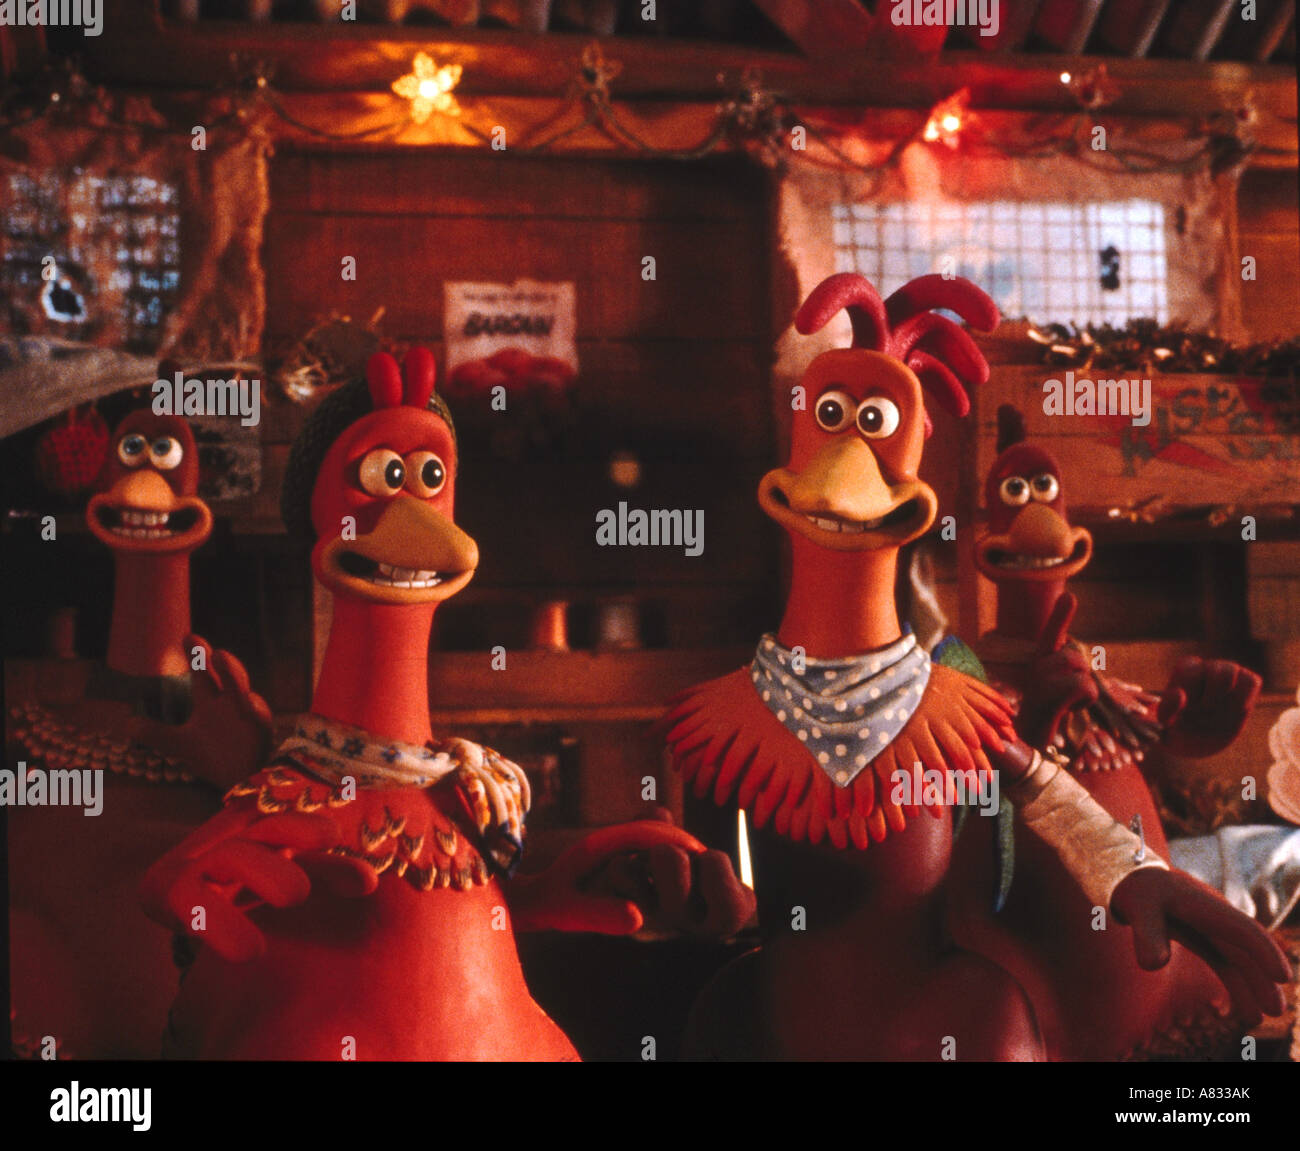 CHICKEN RUN - 2000 Ardman/Pathe/DreamWorks film - Stock Image